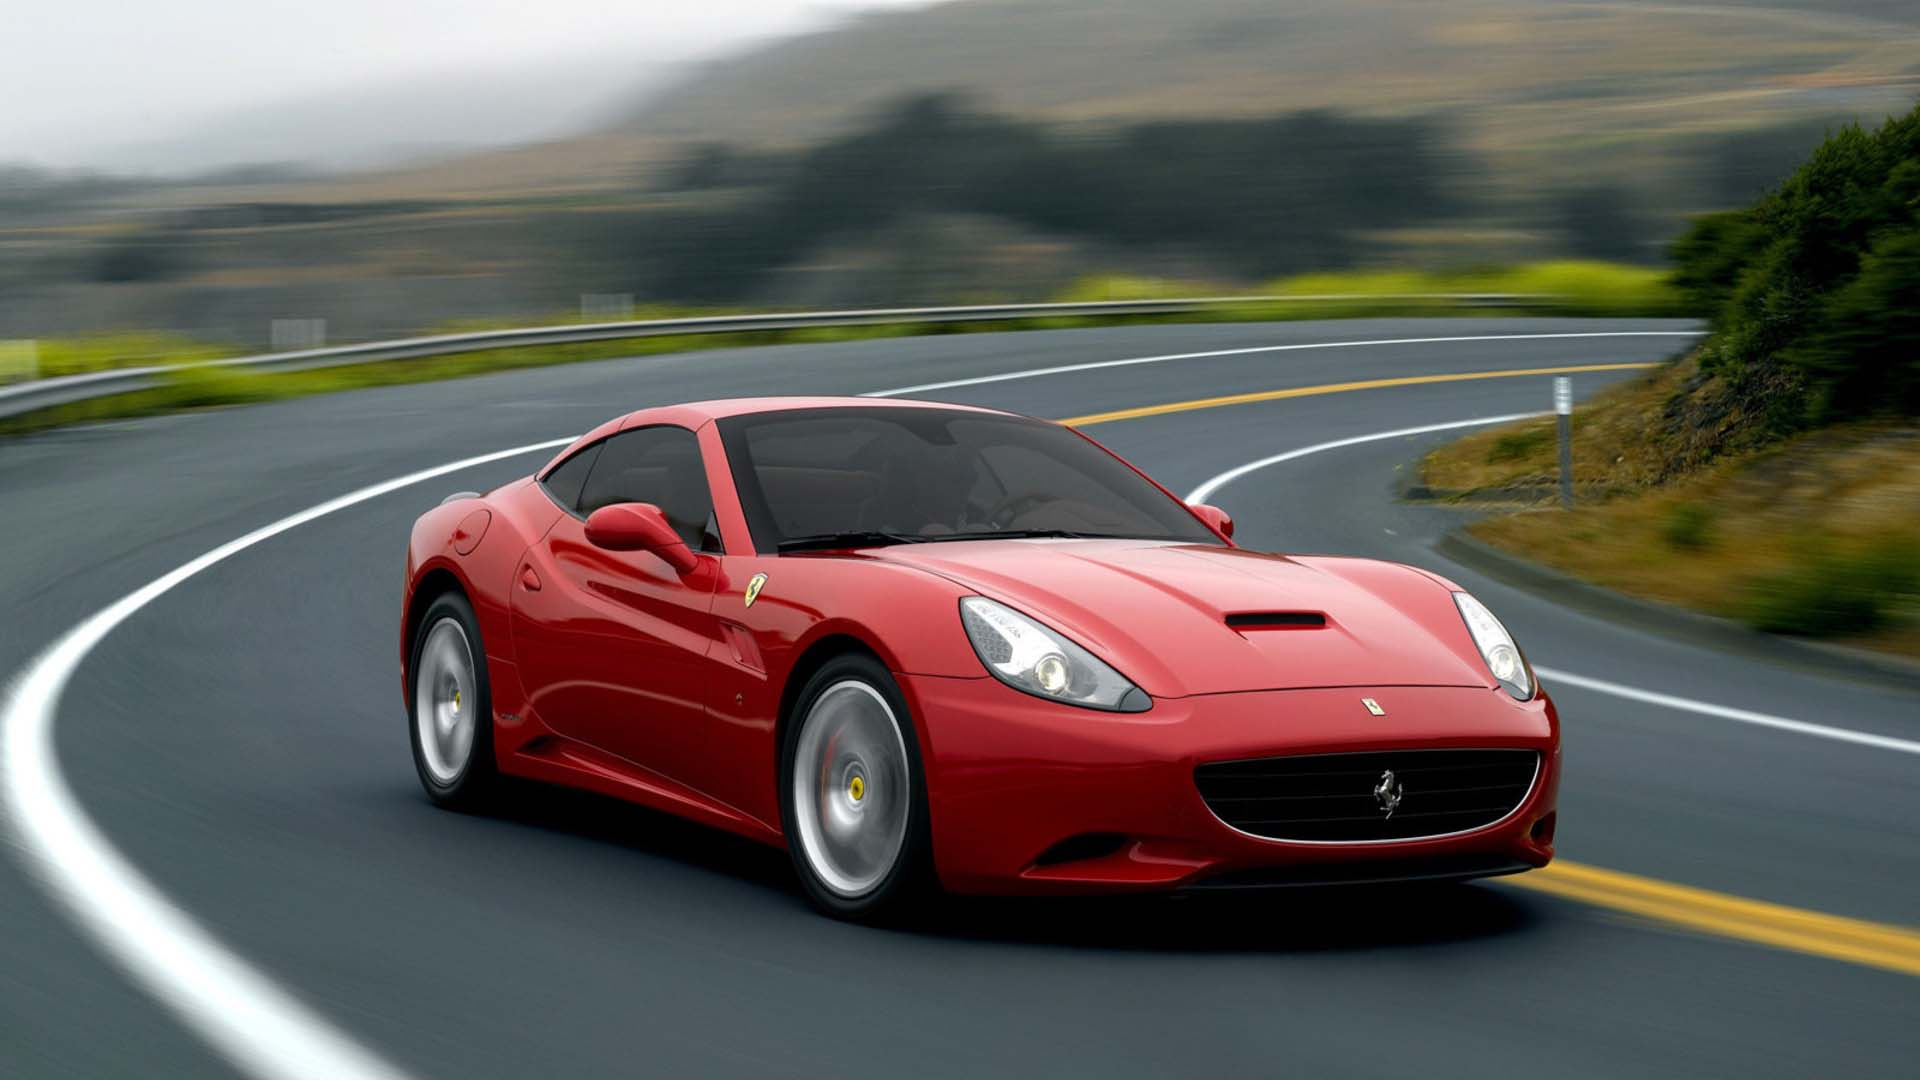 Cars Wallpapers: Race Car Wallpapers High Resolution